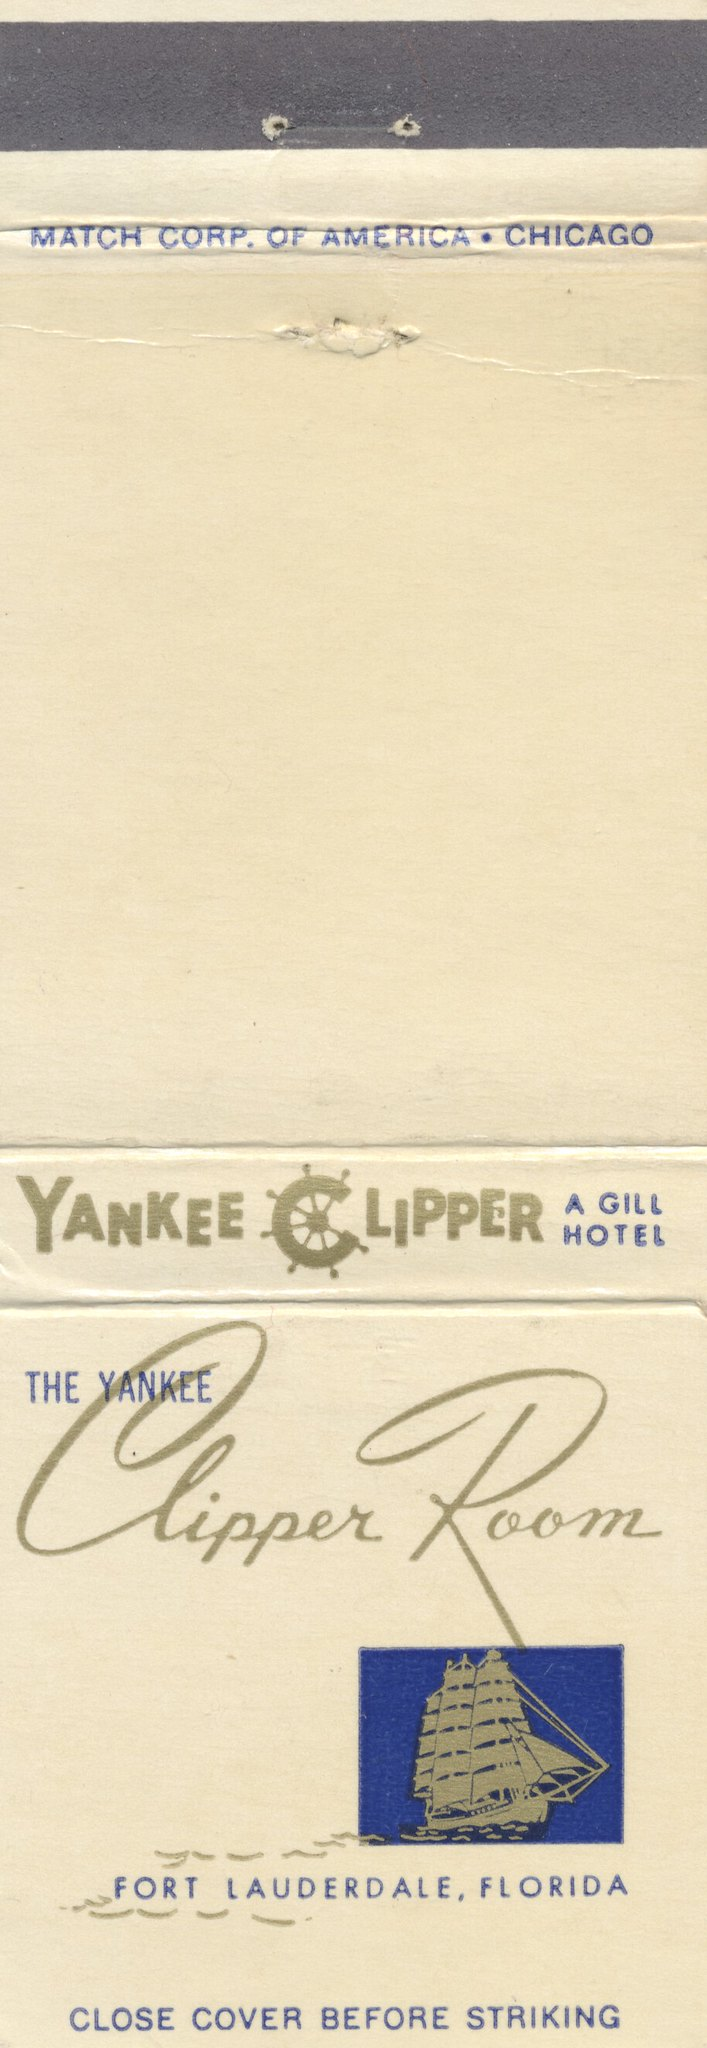 The Yankee Clipper - Fort Lauderdale, Florida